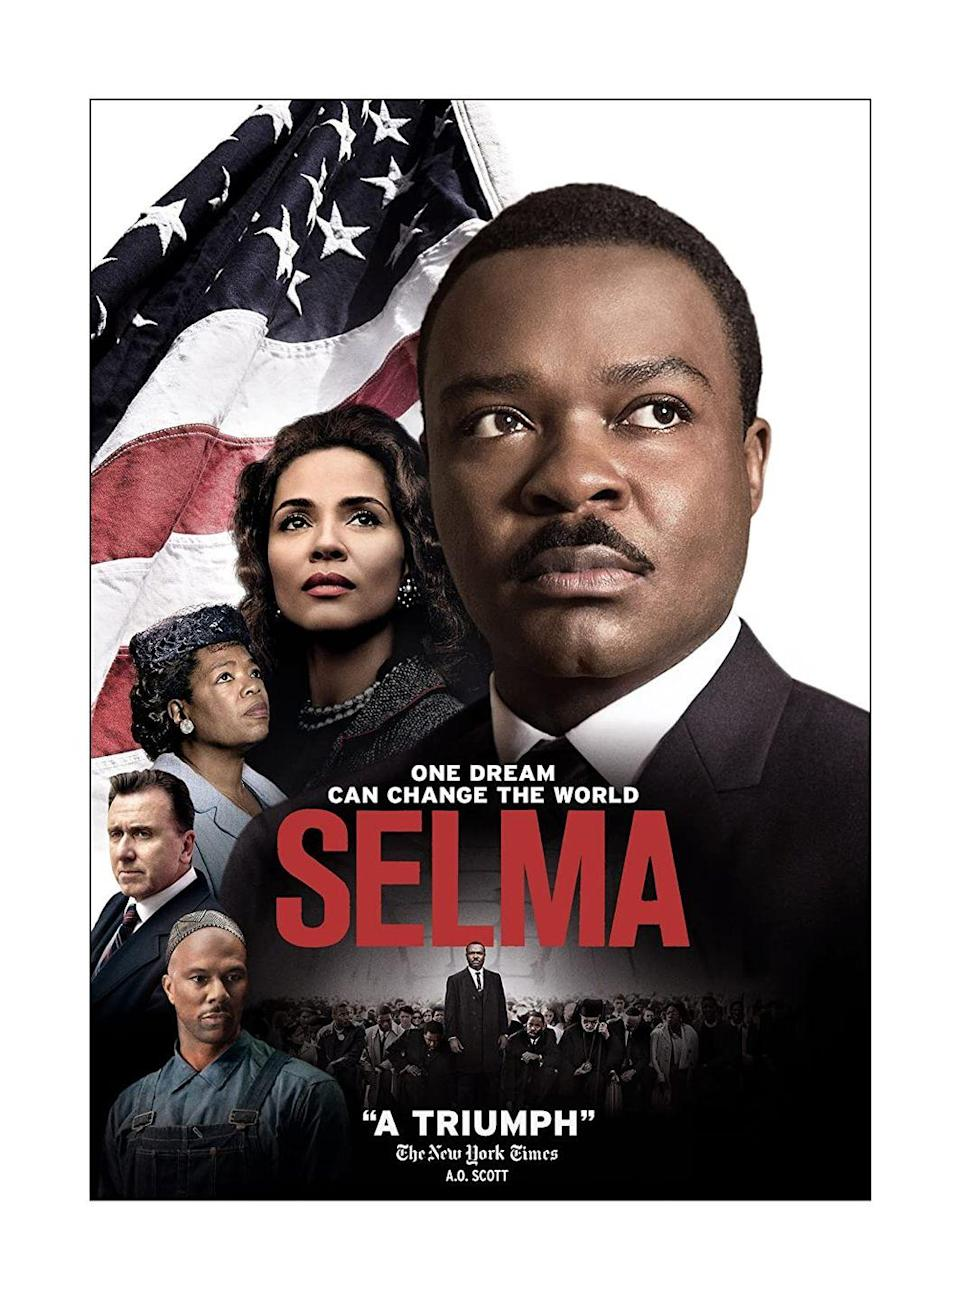 """<p><a class=""""link rapid-noclick-resp"""" href=""""https://www.amazon.com/Selma-David-Oyelowo/dp/B00S0X4HK8?tag=syn-yahoo-20&ascsubtag=%5Bartid%7C10070.g.34963316%5Bsrc%7Cyahoo-us"""" rel=""""nofollow noopener"""" target=""""_blank"""" data-ylk=""""slk:STREAM NOW"""">STREAM NOW</a></p><p>This historical drama is based on the 1965 voting rights marches from Selma to Montgomery, which were organized by civil rights movement leader James Bevel and led by civil rights activists Martin Luther King Jr., Hosea Williams, and John Lewis. </p>"""